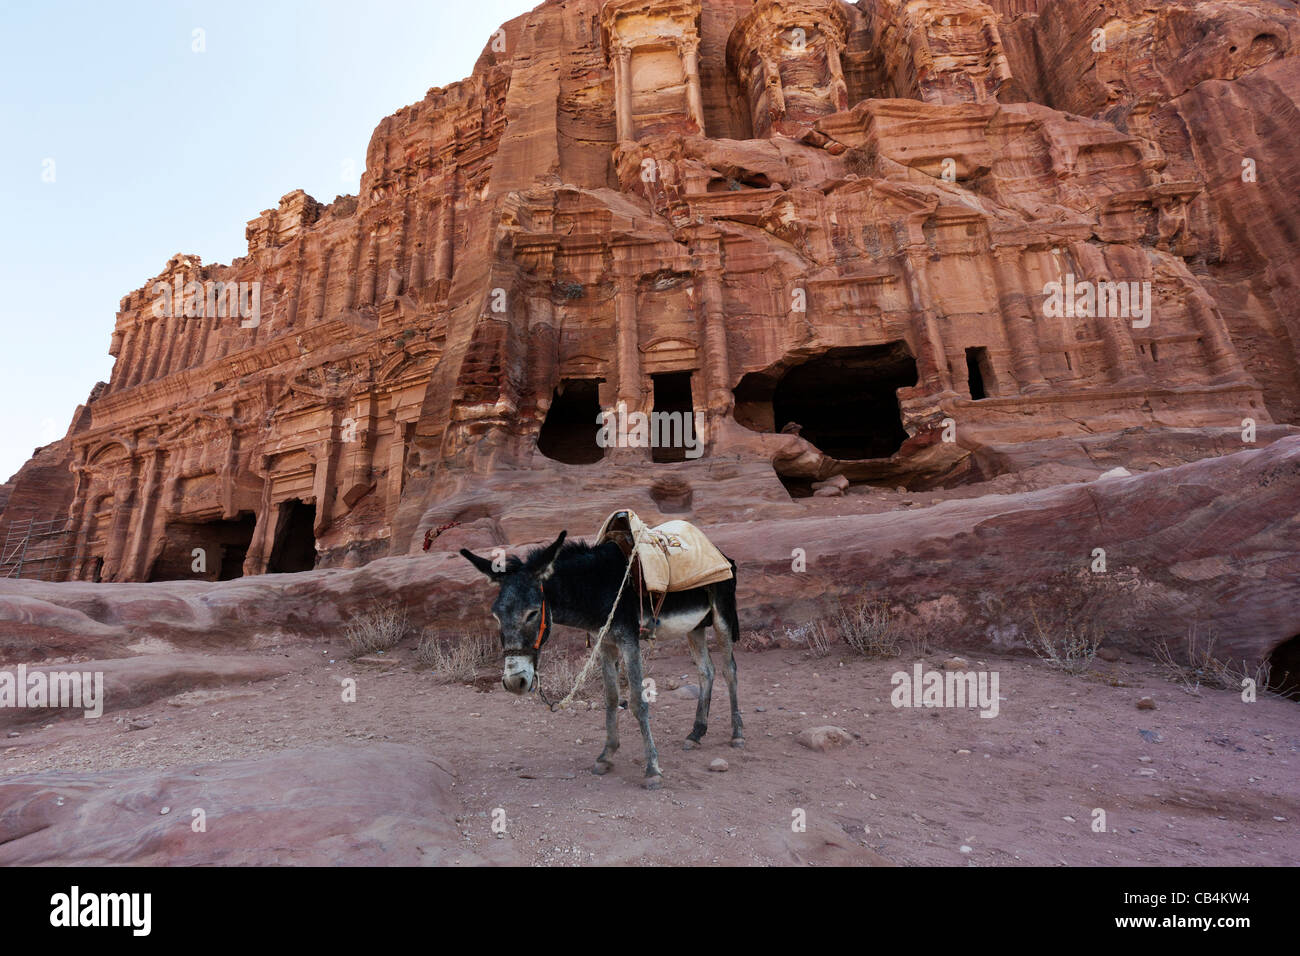 A donkey in front of the shaded Royal Tombs at the ancient city of Petra in Jordan Stock Photo